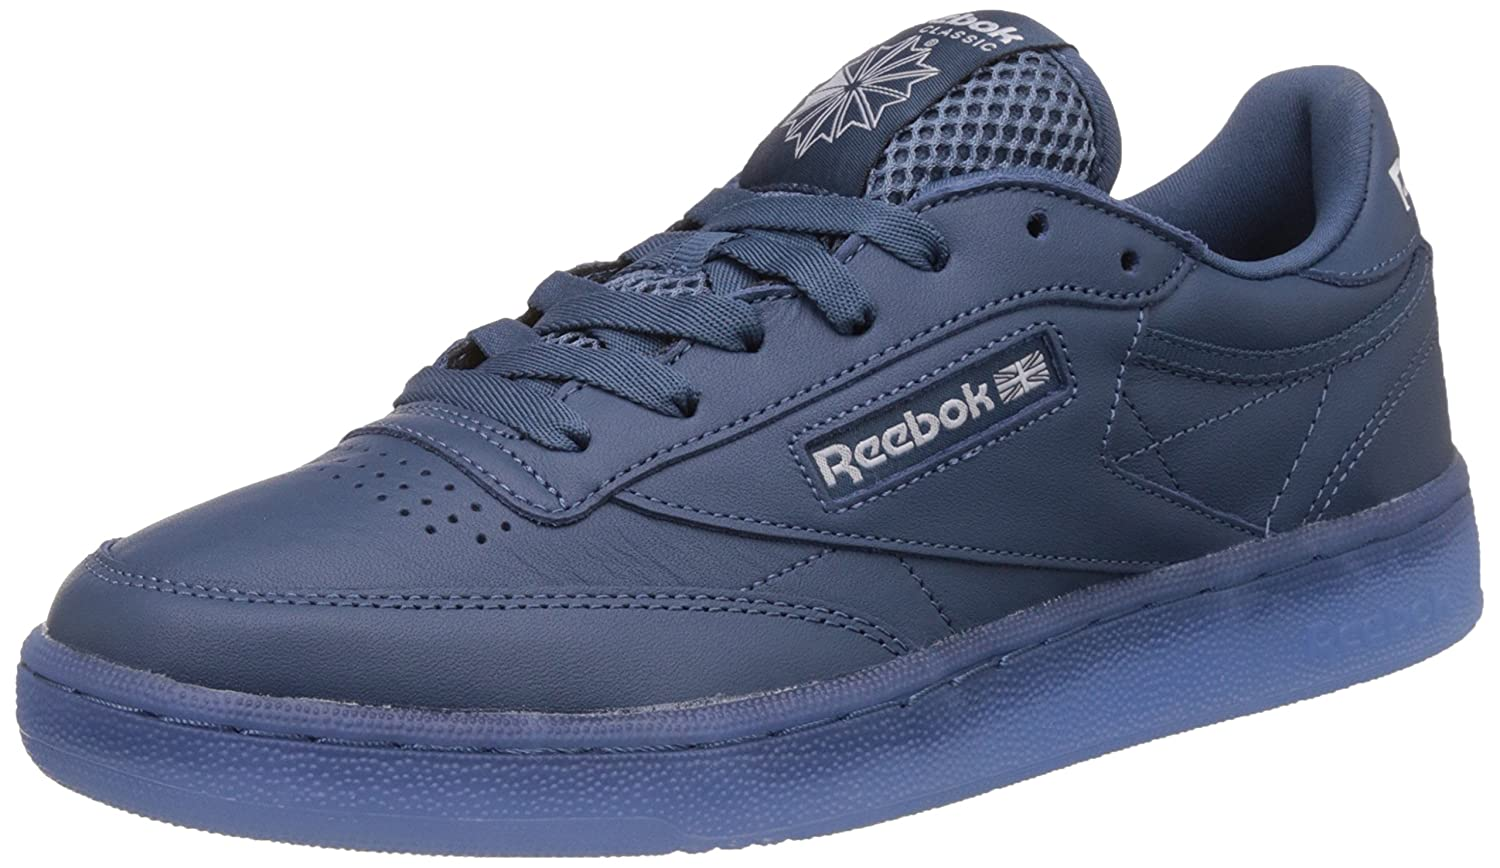 5e6814f308c Reebok Classics Men s Club C 85 Ice Brave Blue and White-Ice Leather Tennis  Shoes - 9 UK India (43 EU) (10 US)  Buy Online at Low Prices in India -  Amazon. ...